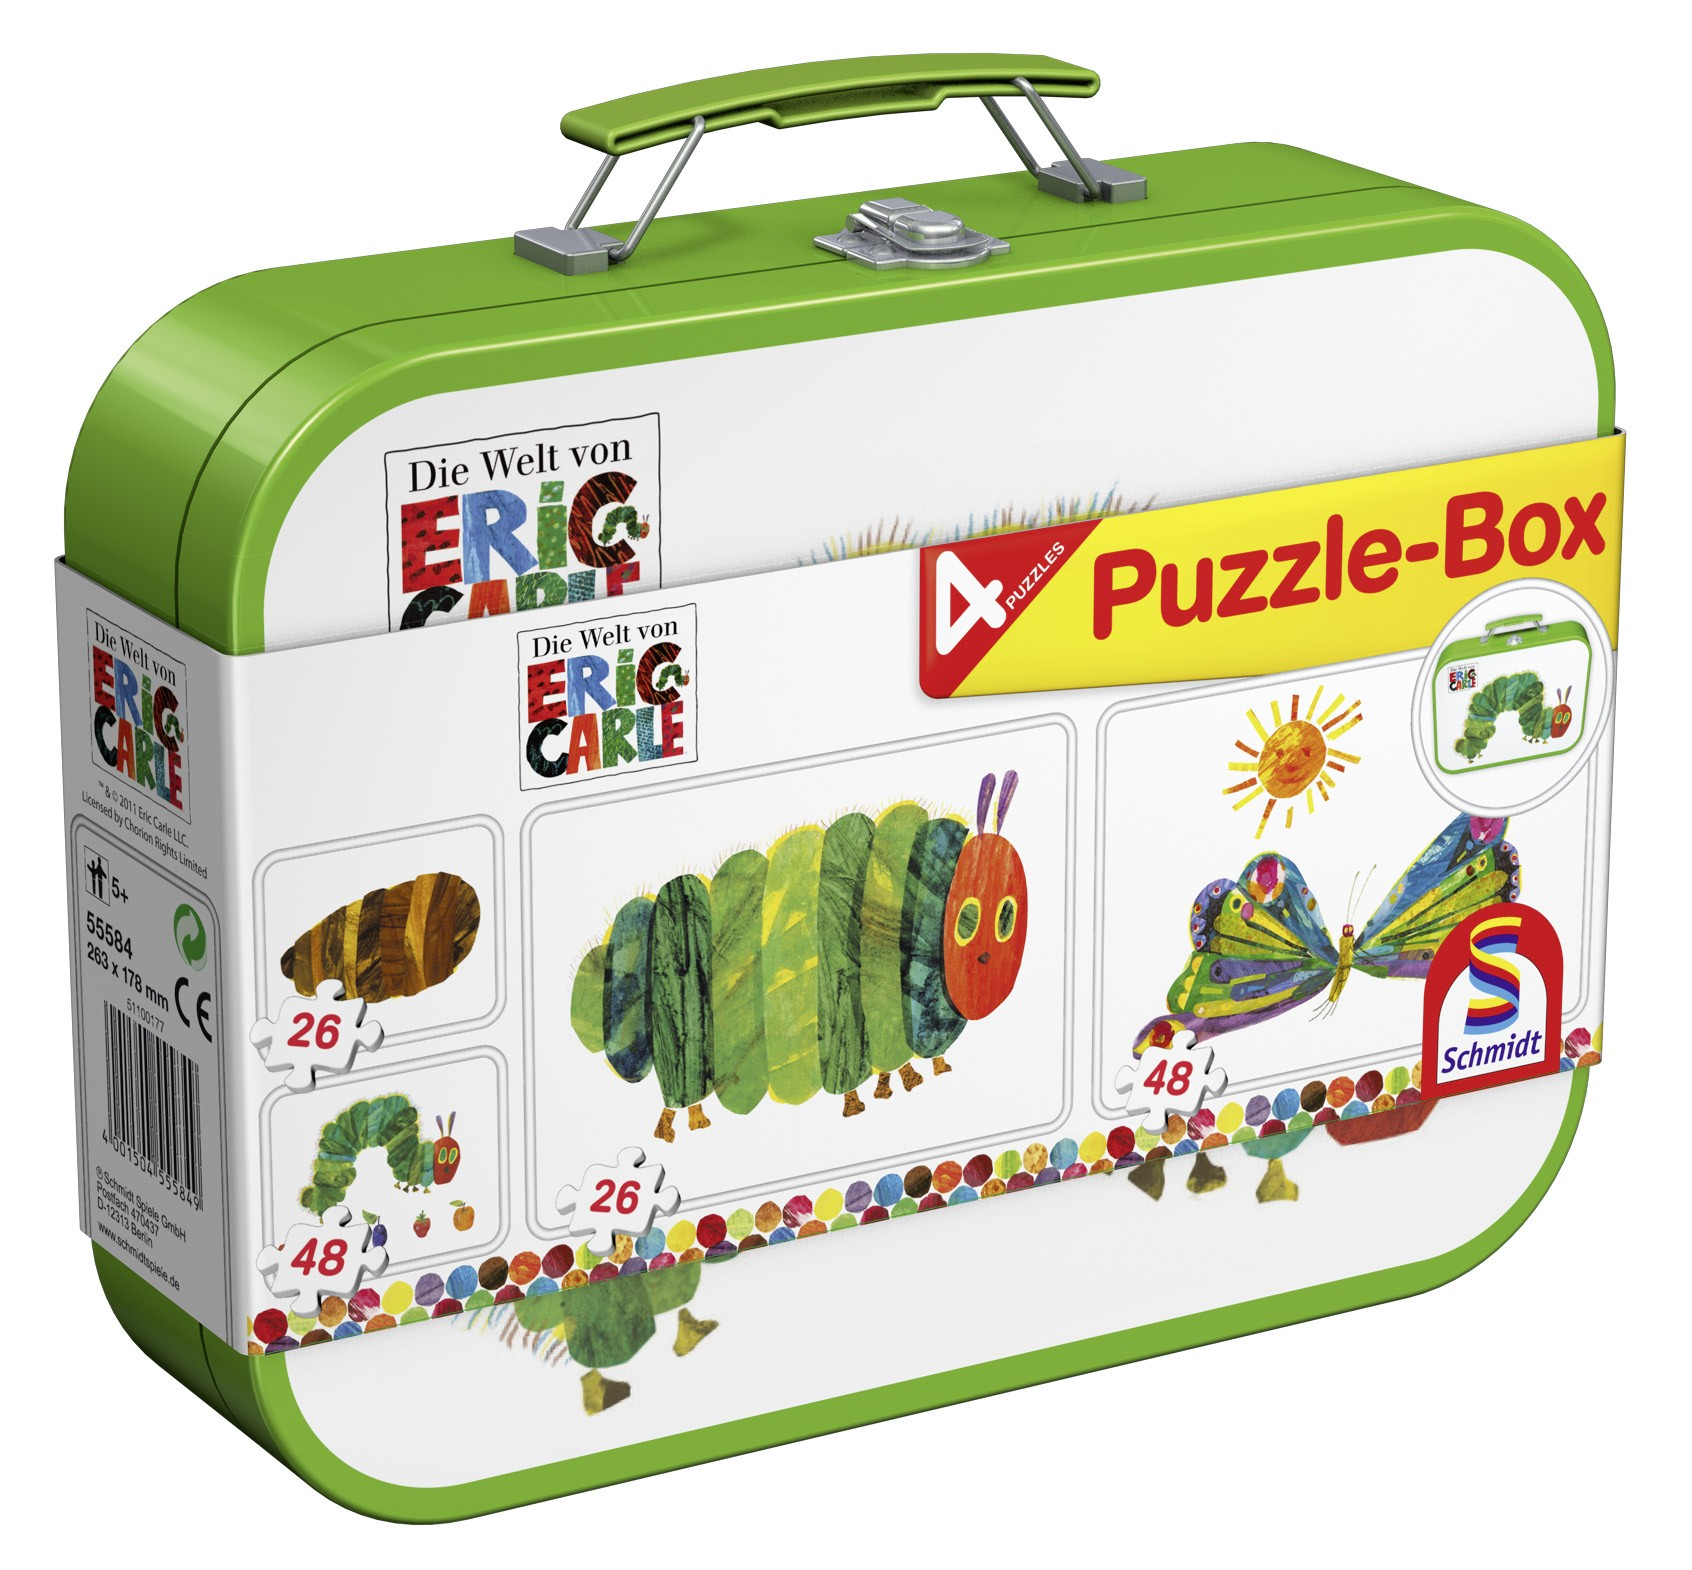 Puzzle Verpackung Koffer